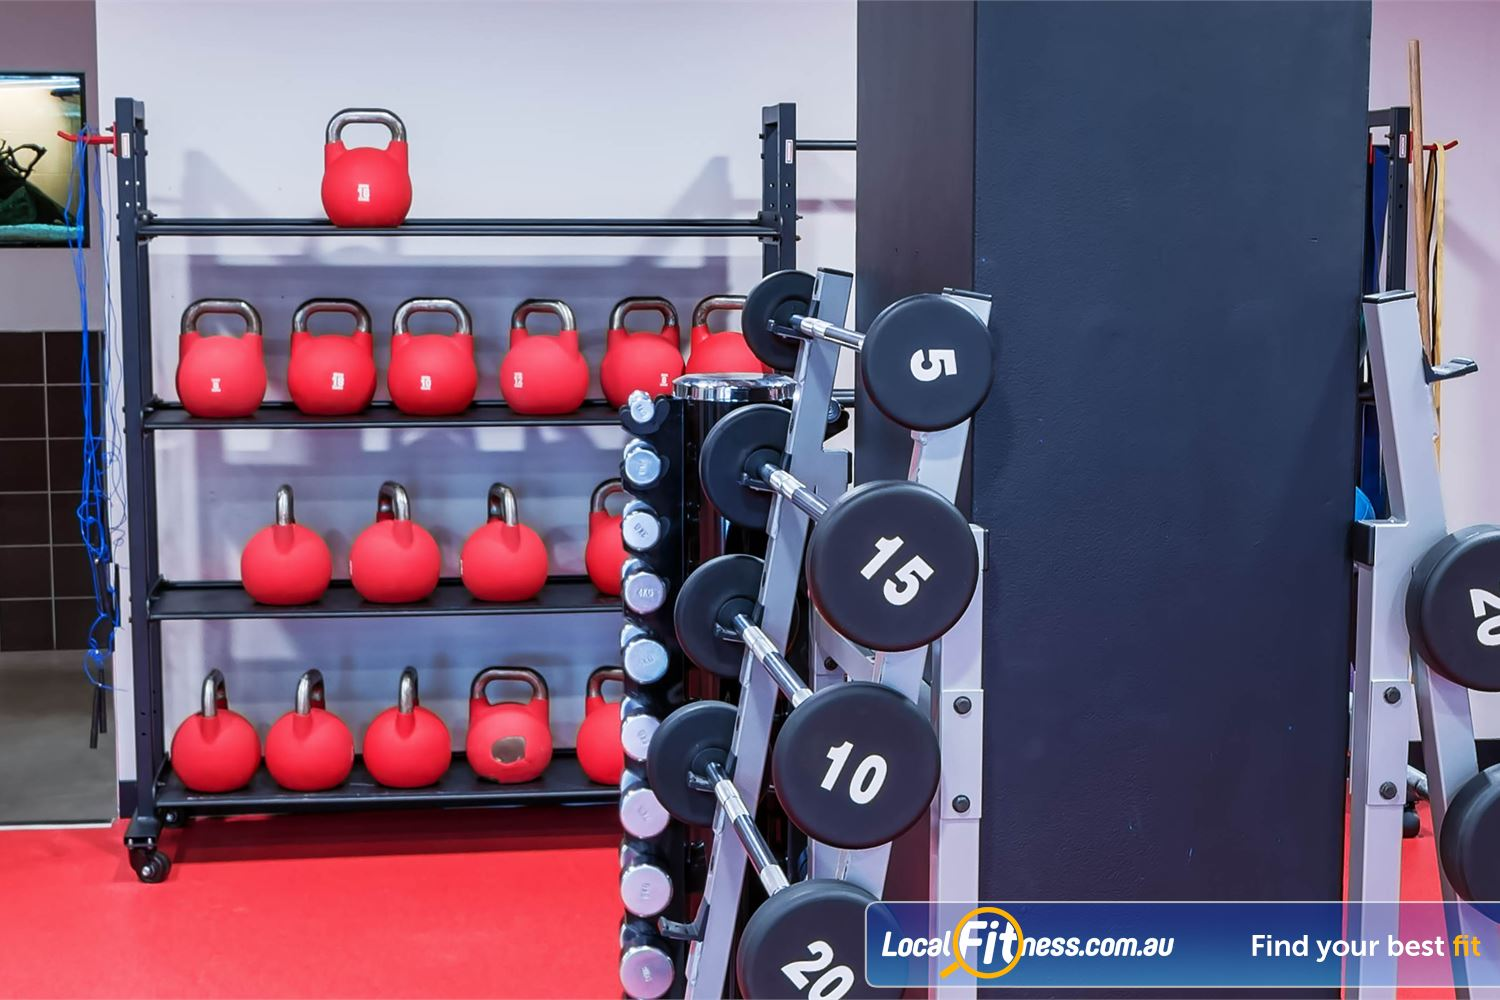 Fitness First Elizabeth Plaza Near Milsons Point Our freestyle area is fully equipped with kettlebells, dumbbells, barbells and more.